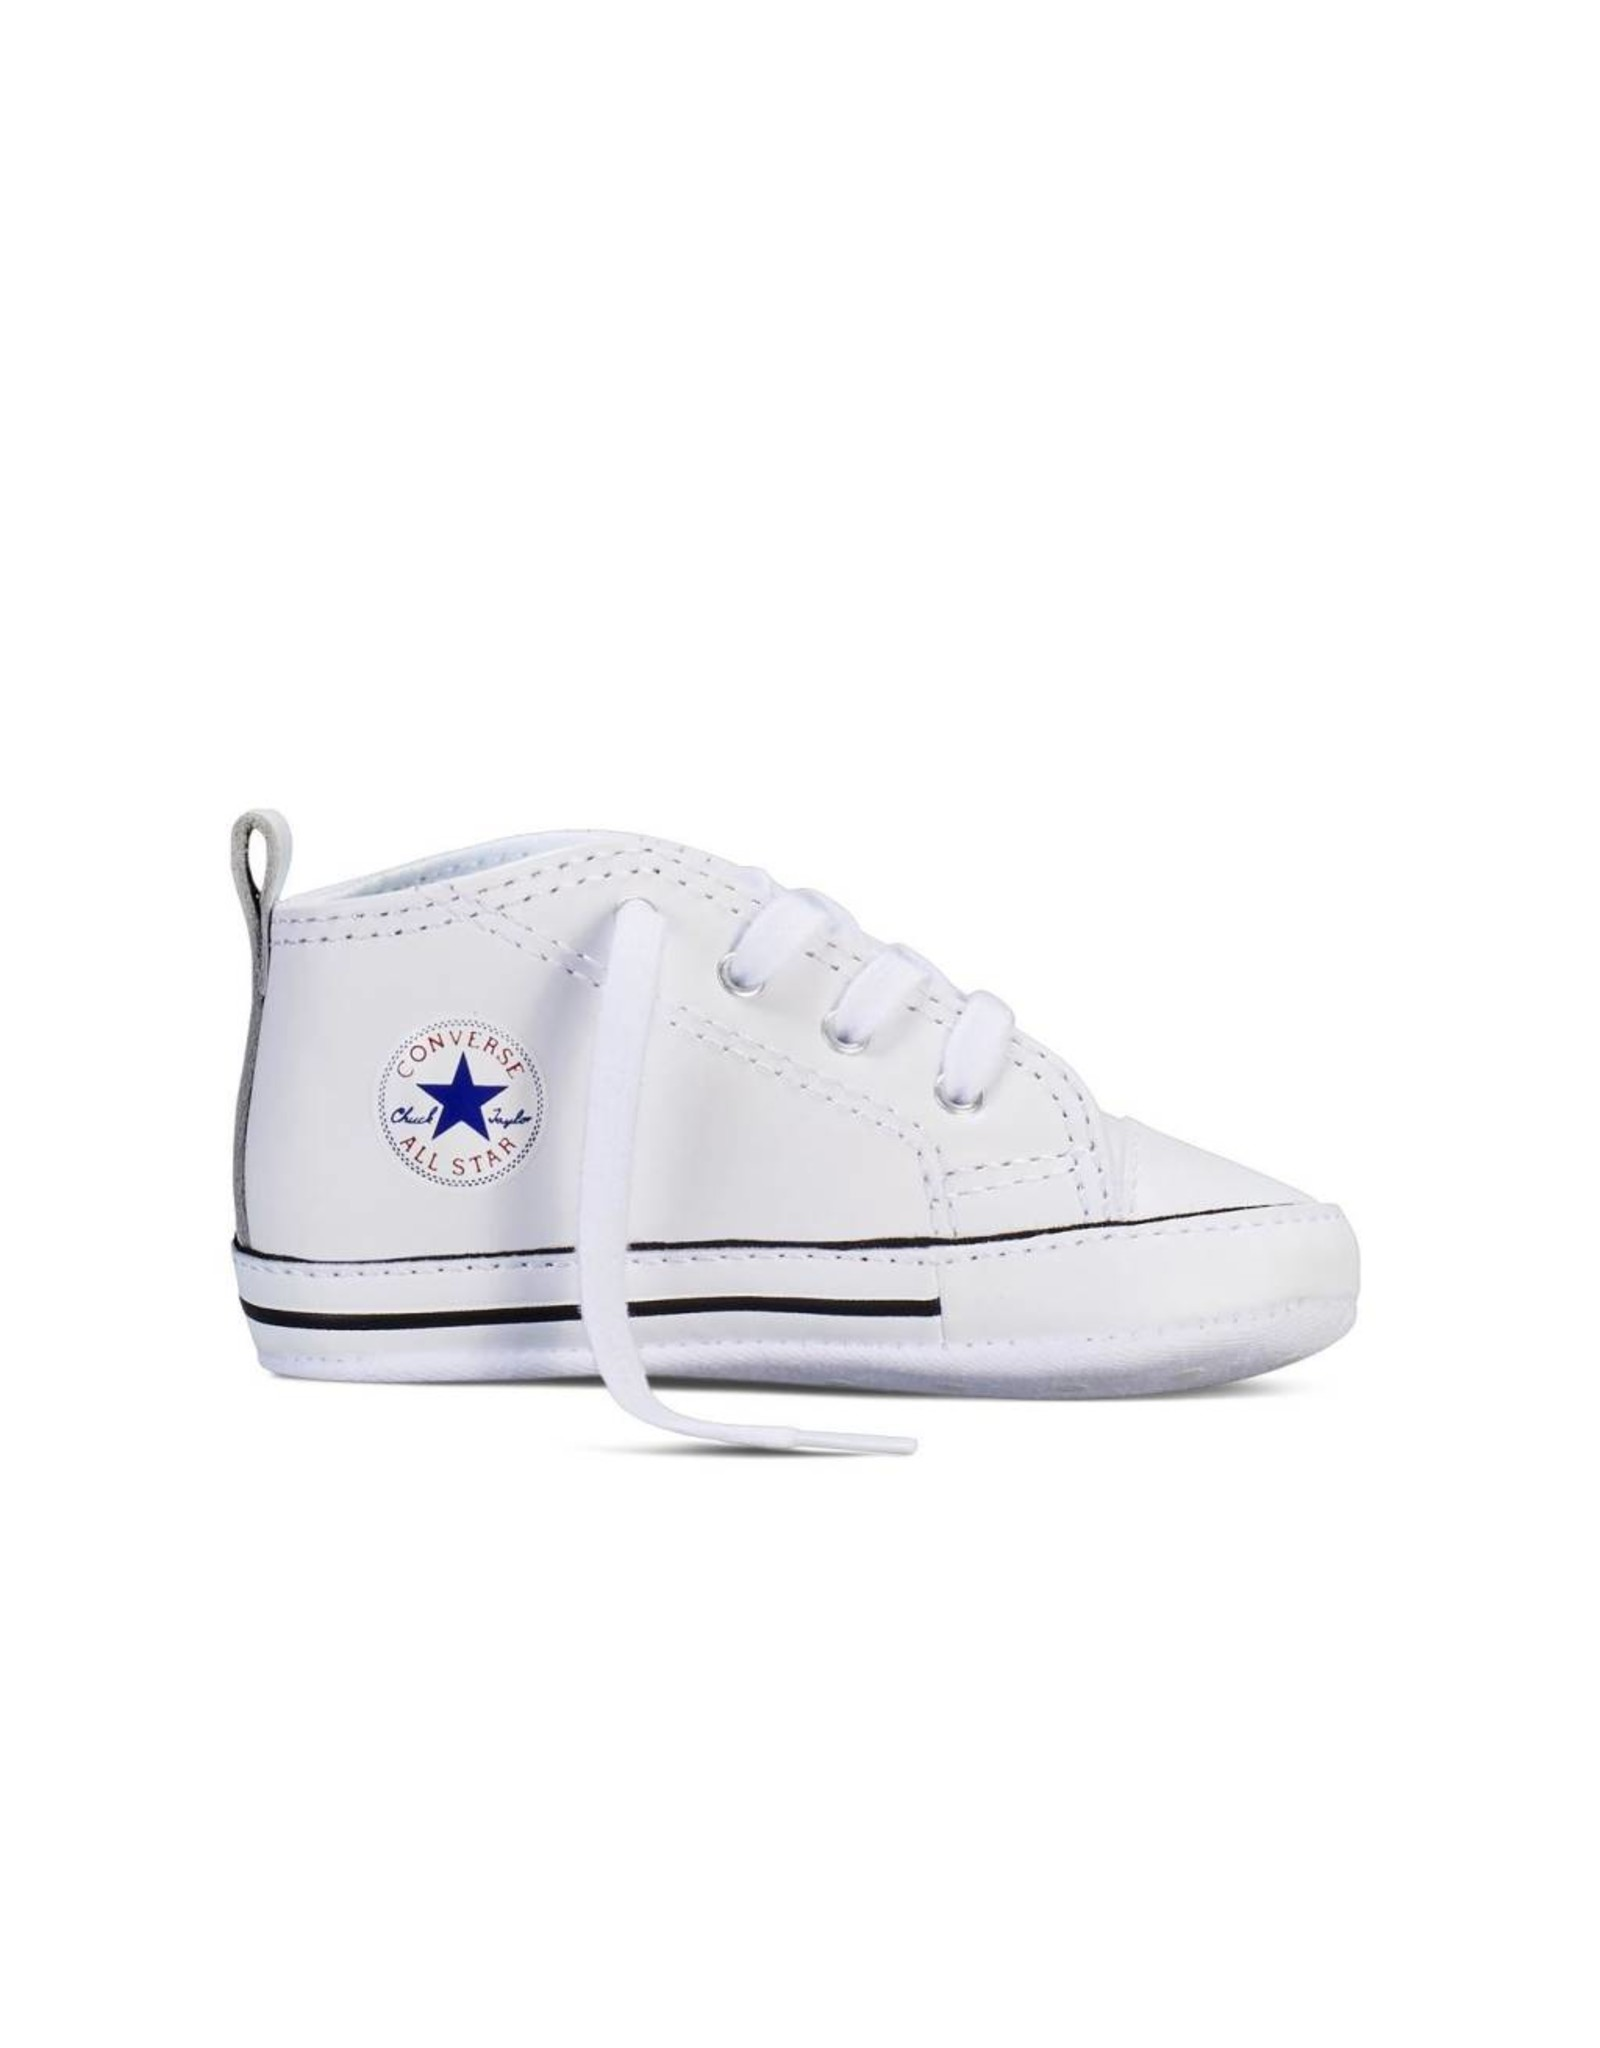 CONVERSE CHUCK TAYLOR FIRST STAR LEATHER HI WHITE CC12OP-81229